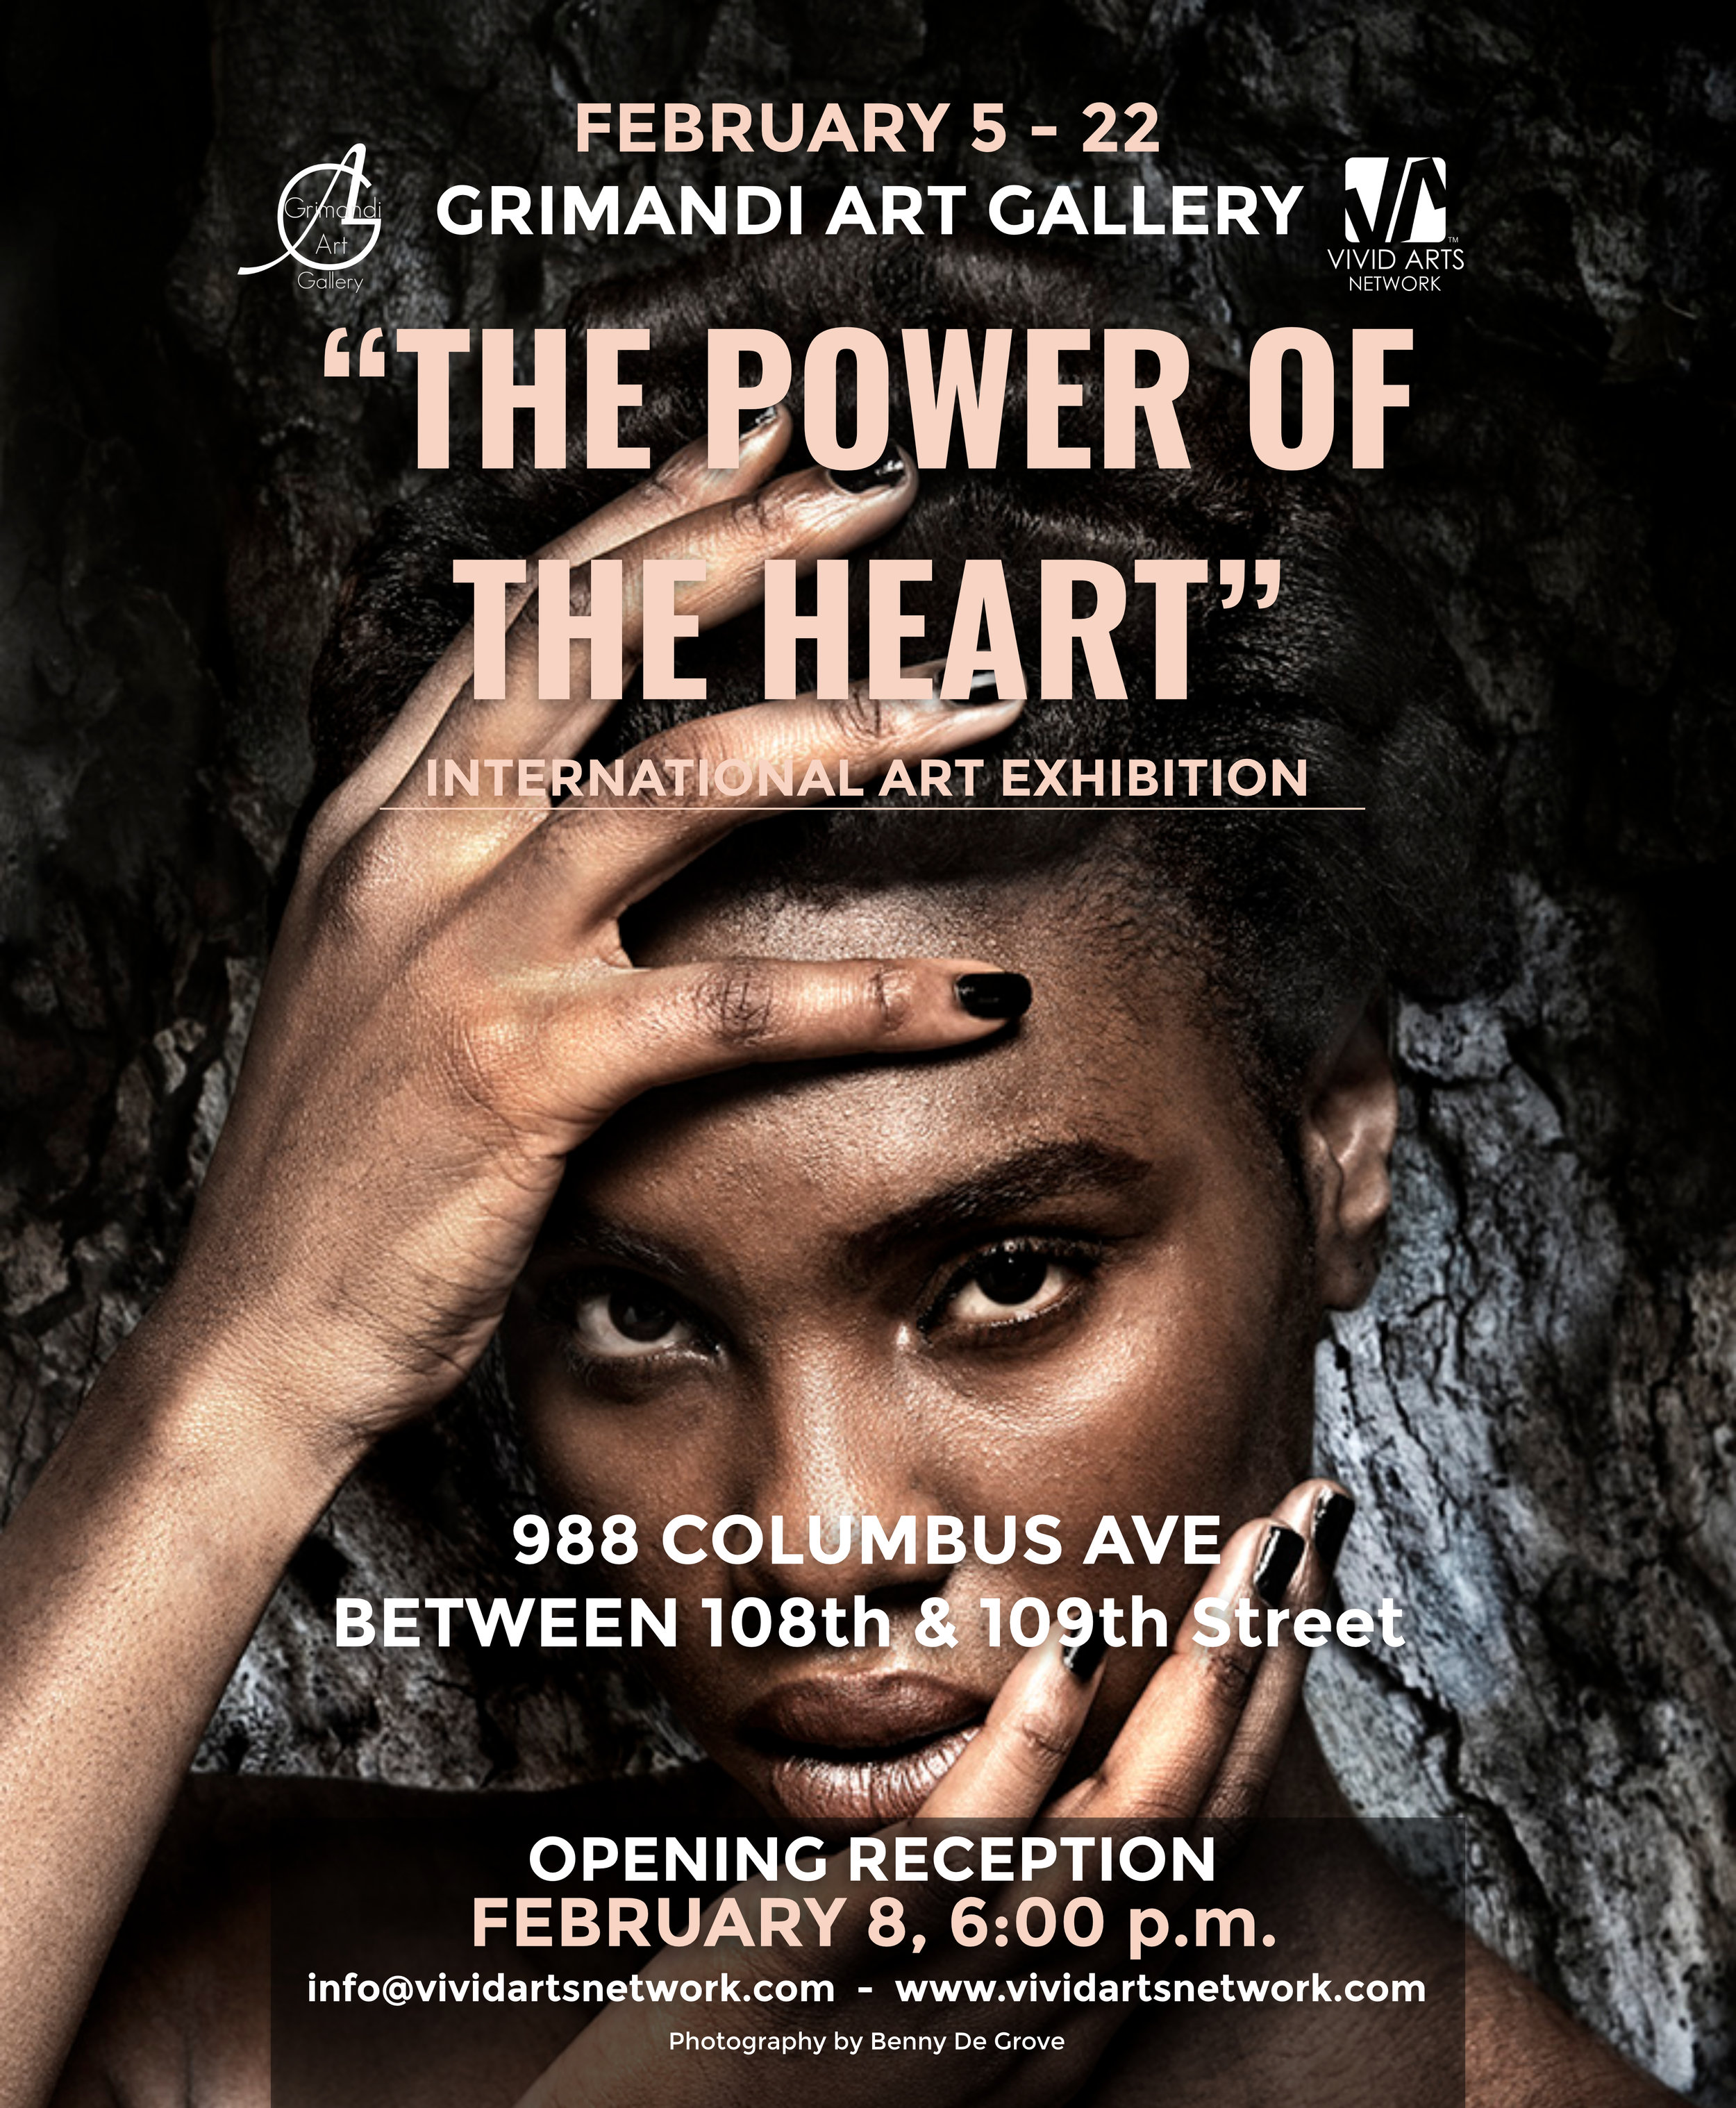 """The power of the heart"" - INTERNATIONAL ART EXHIBITION"